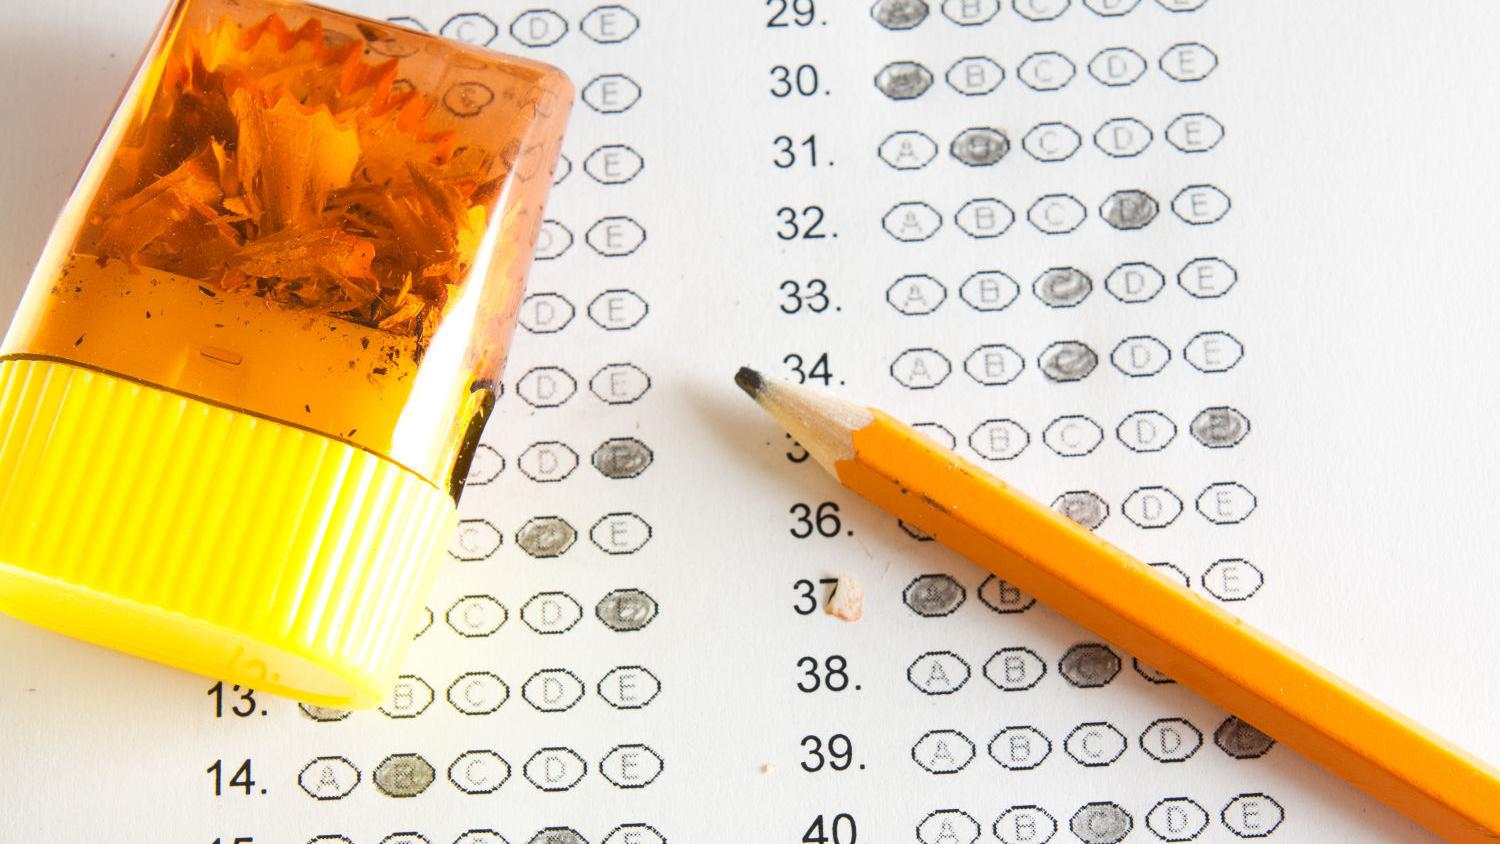 Wisconsin think tank launches online database of state educational data